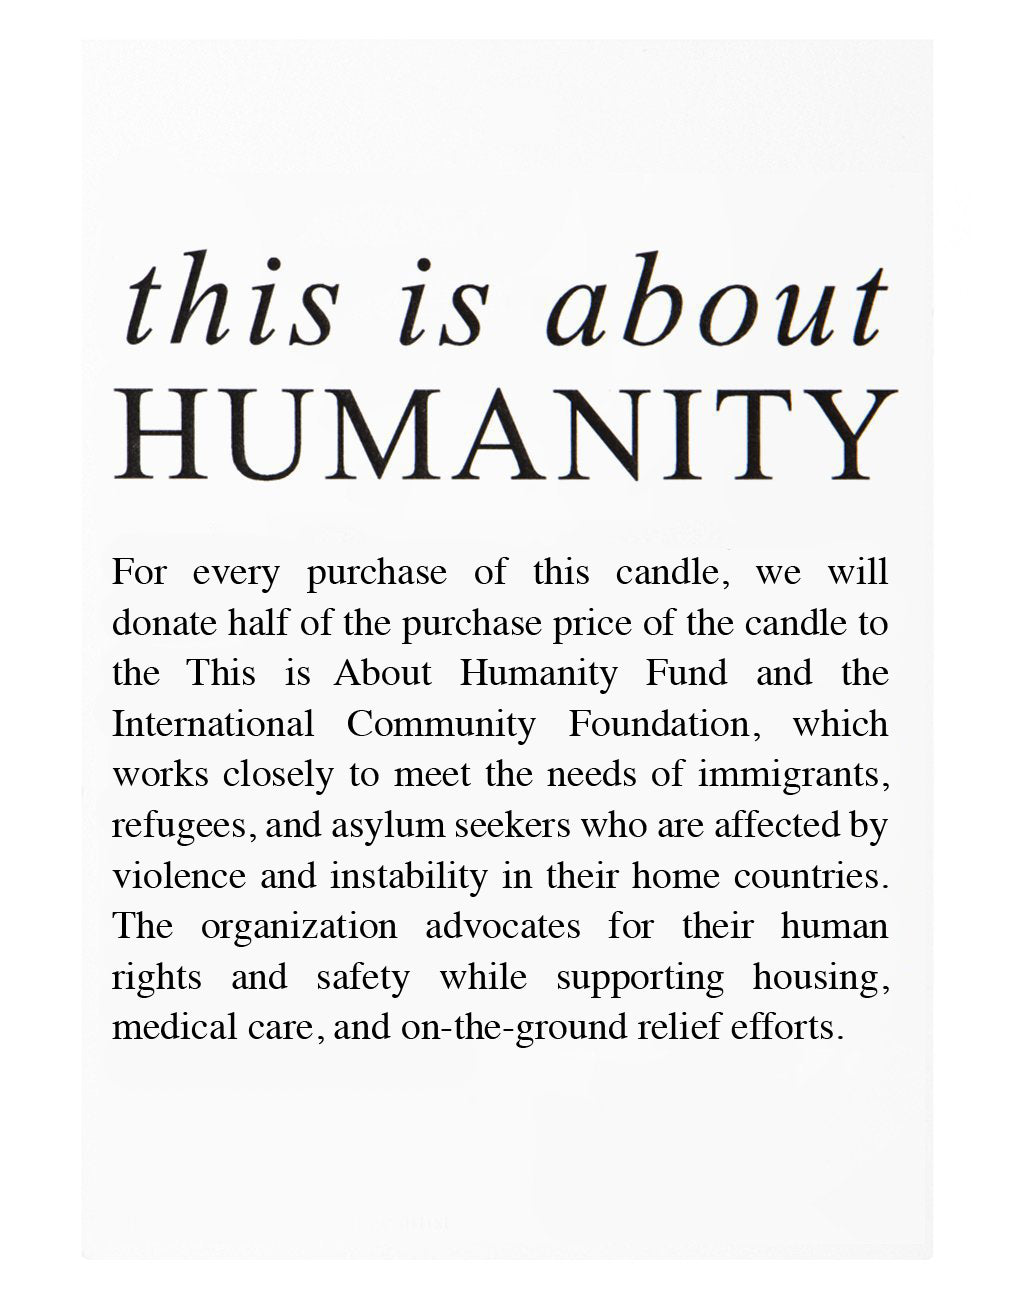 Candle Label - This is About Humanity (Black)